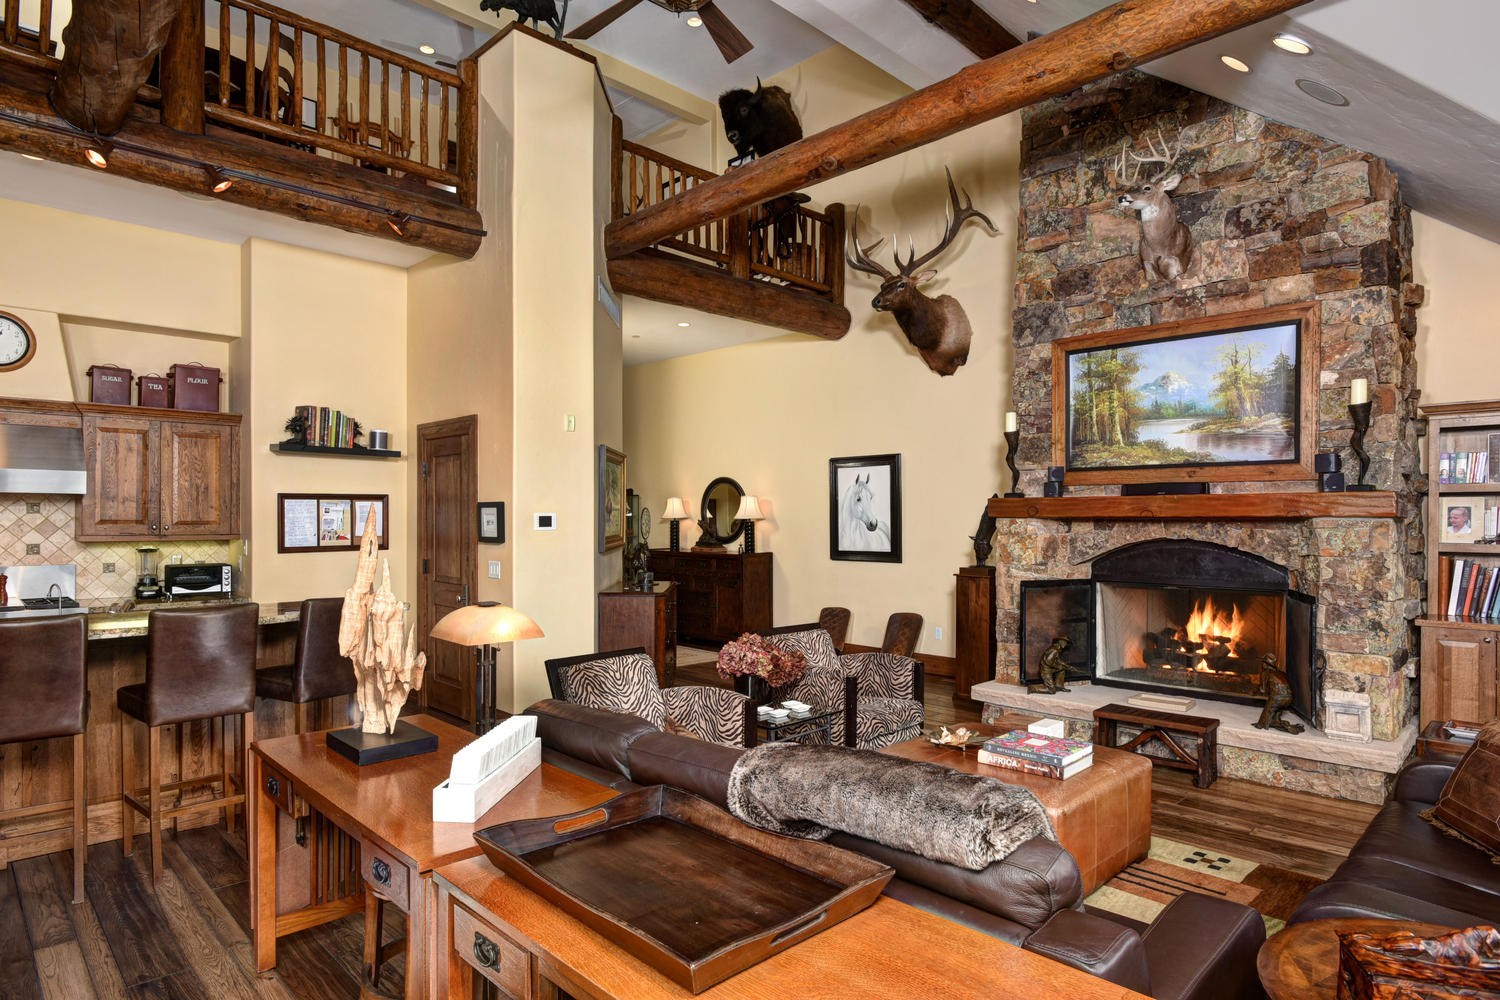 Additional photo for property listing at Horizon Pass #5 in Bachelor Gulch 122 Peak View #5 Beaver Creek, Colorado 81620 United States